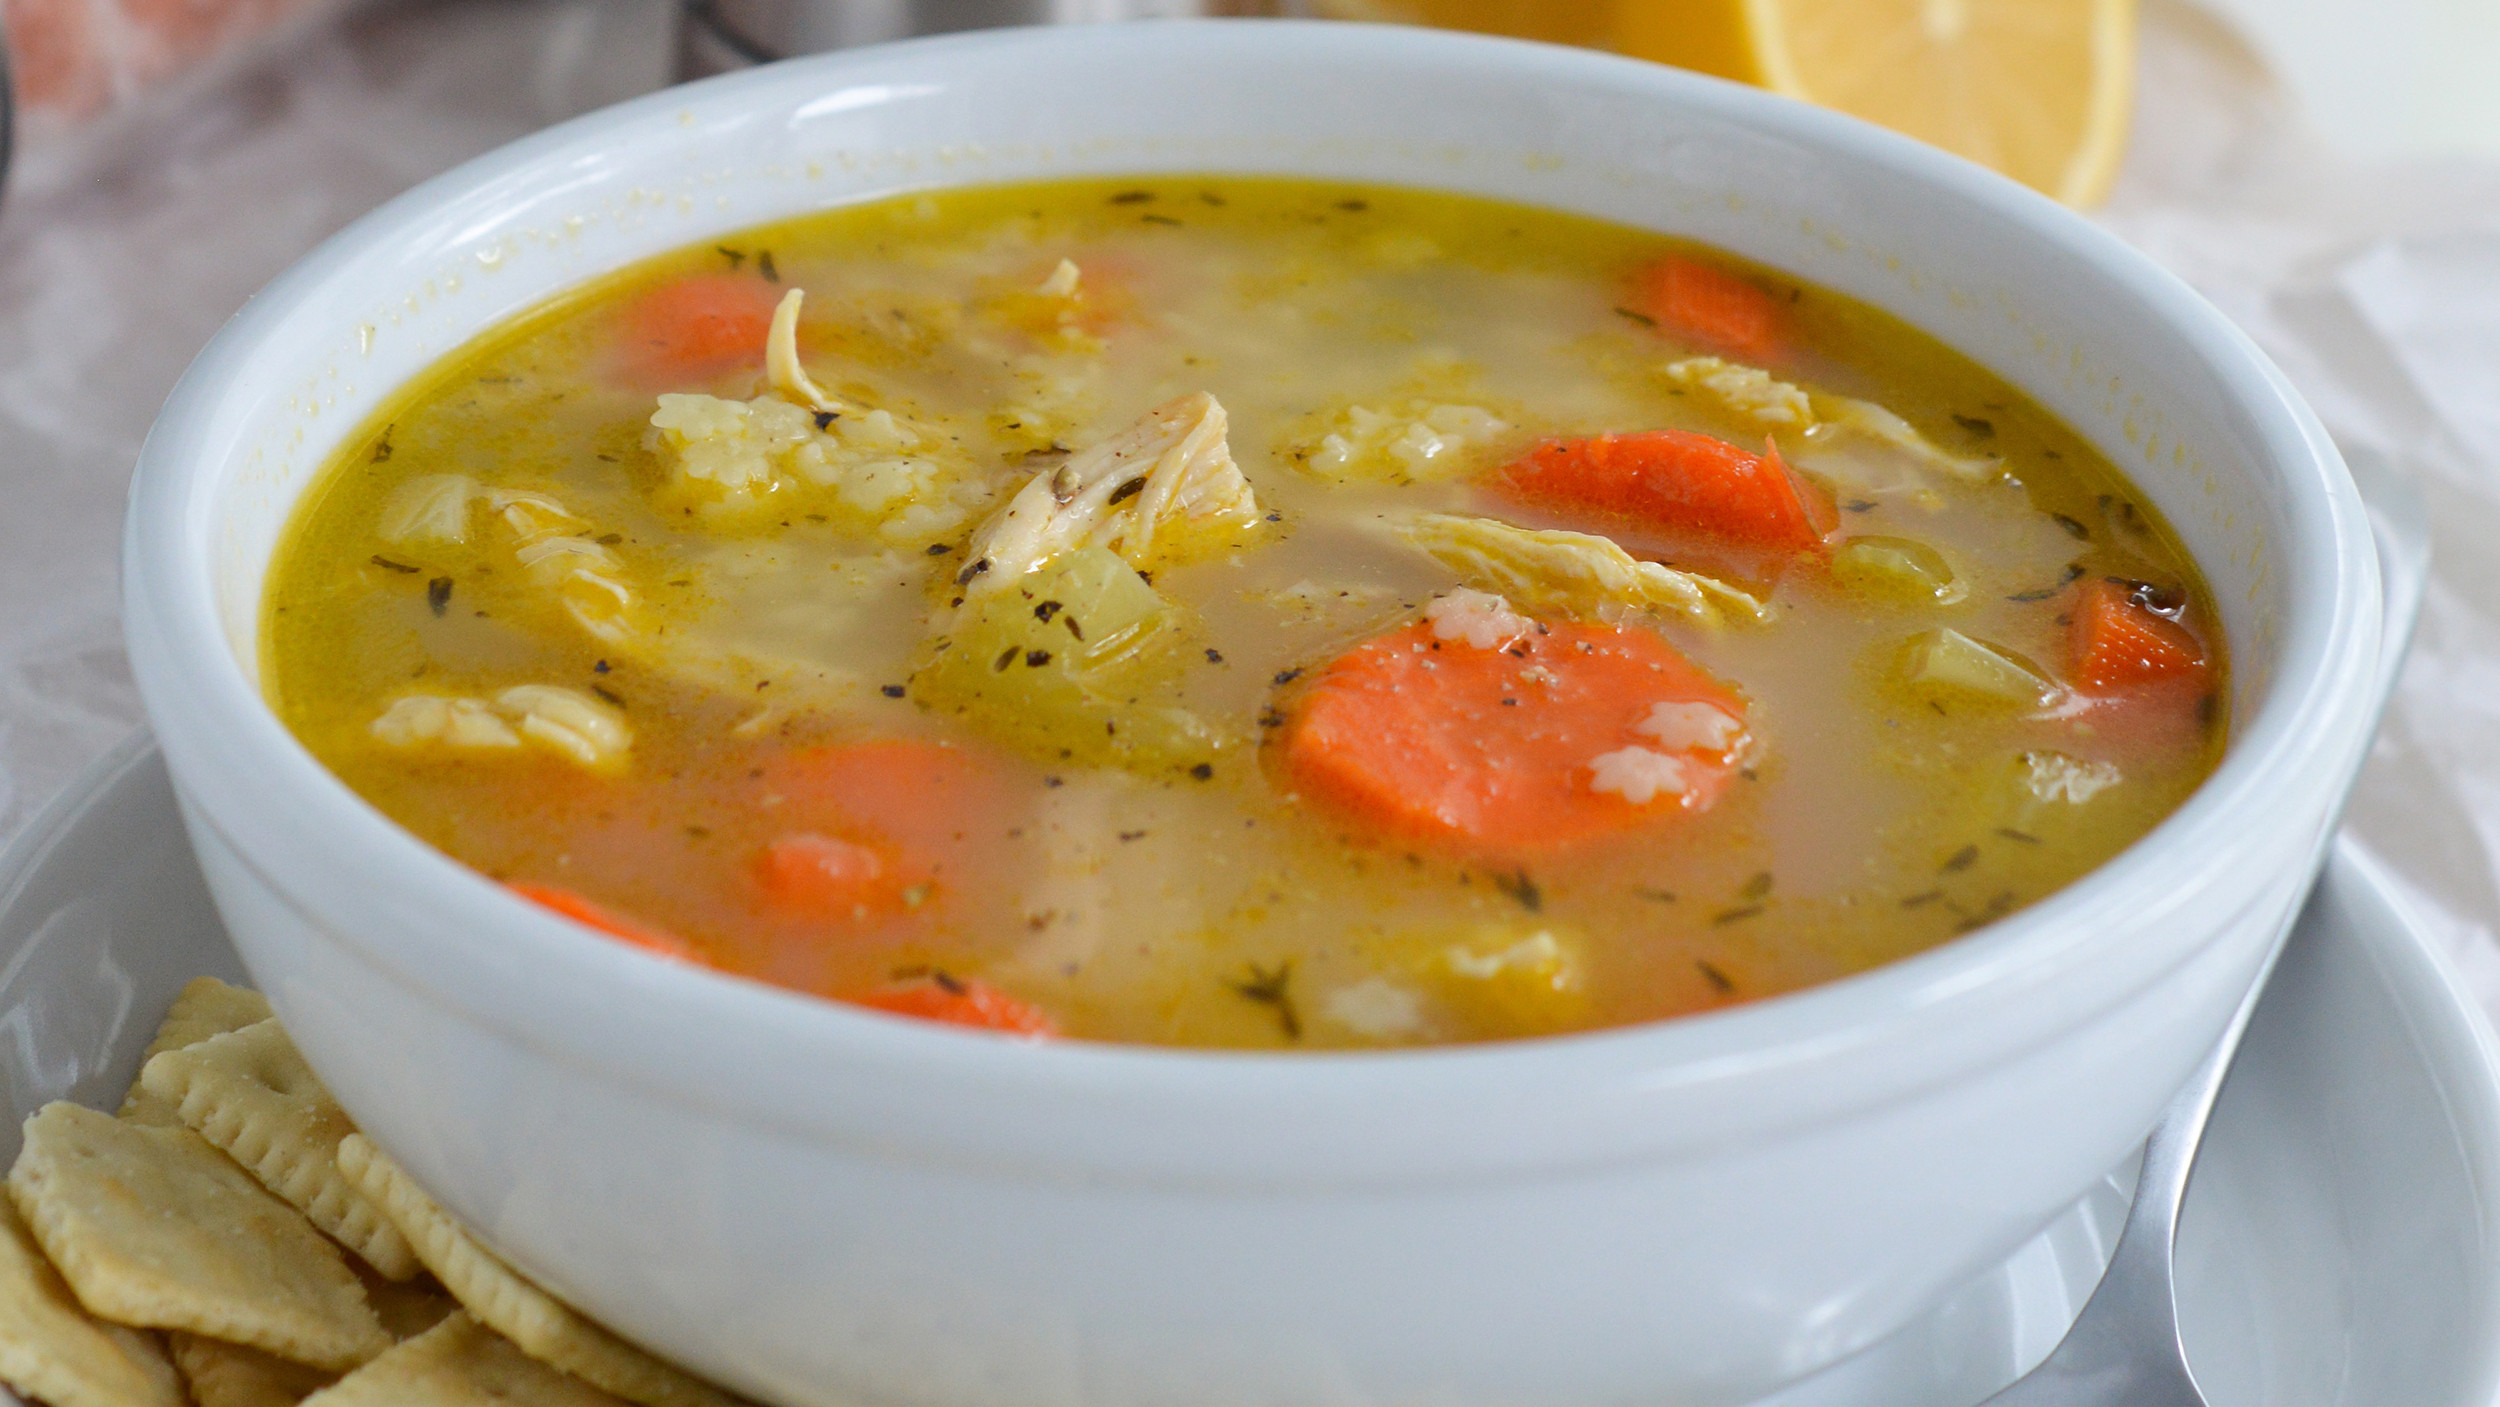 Carrabba'S Chicken Soup Recipe  5 amped up chicken soup recipes that are forting not